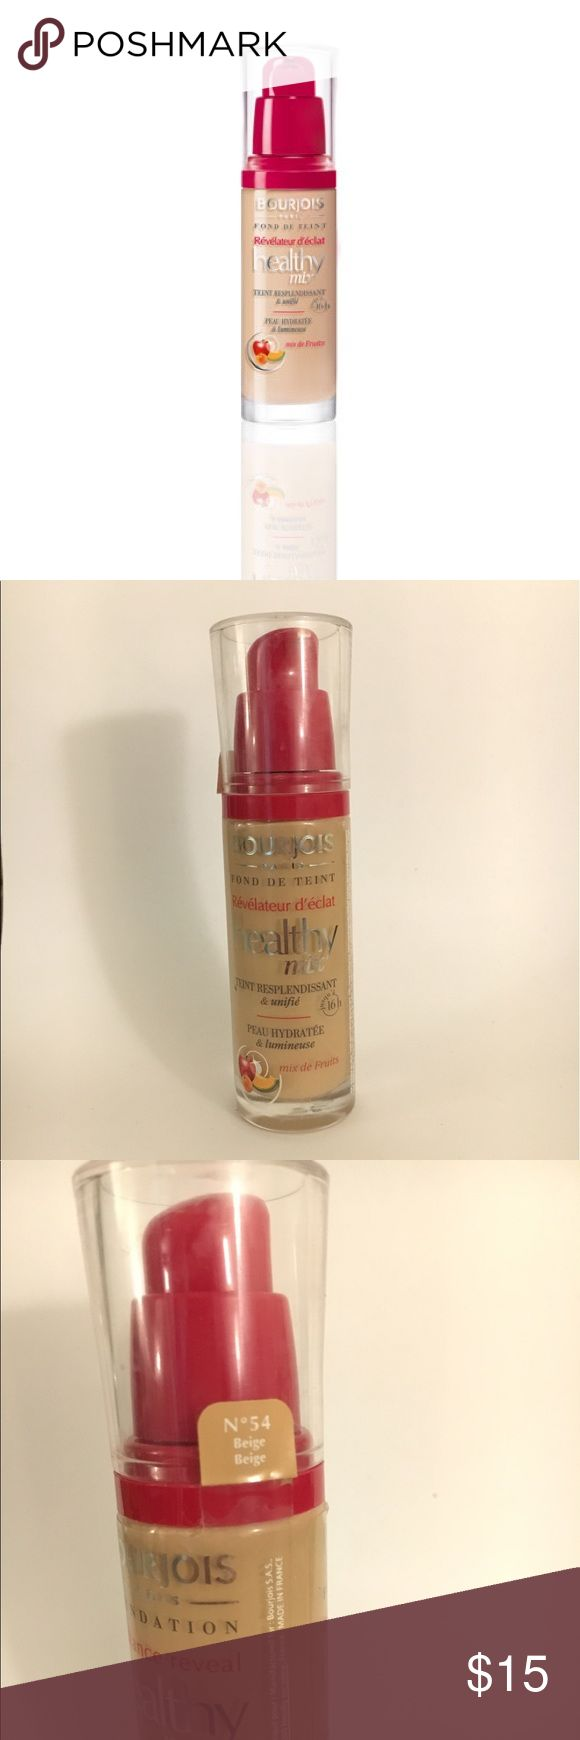 Bourjois Healthy Mix Foundation Bourjois healthy mix foundation in 54 (beige); glass packaging with pump and lid; used a few times but selling because I found a different shade that is a better match to my undertone Makeup Foundation